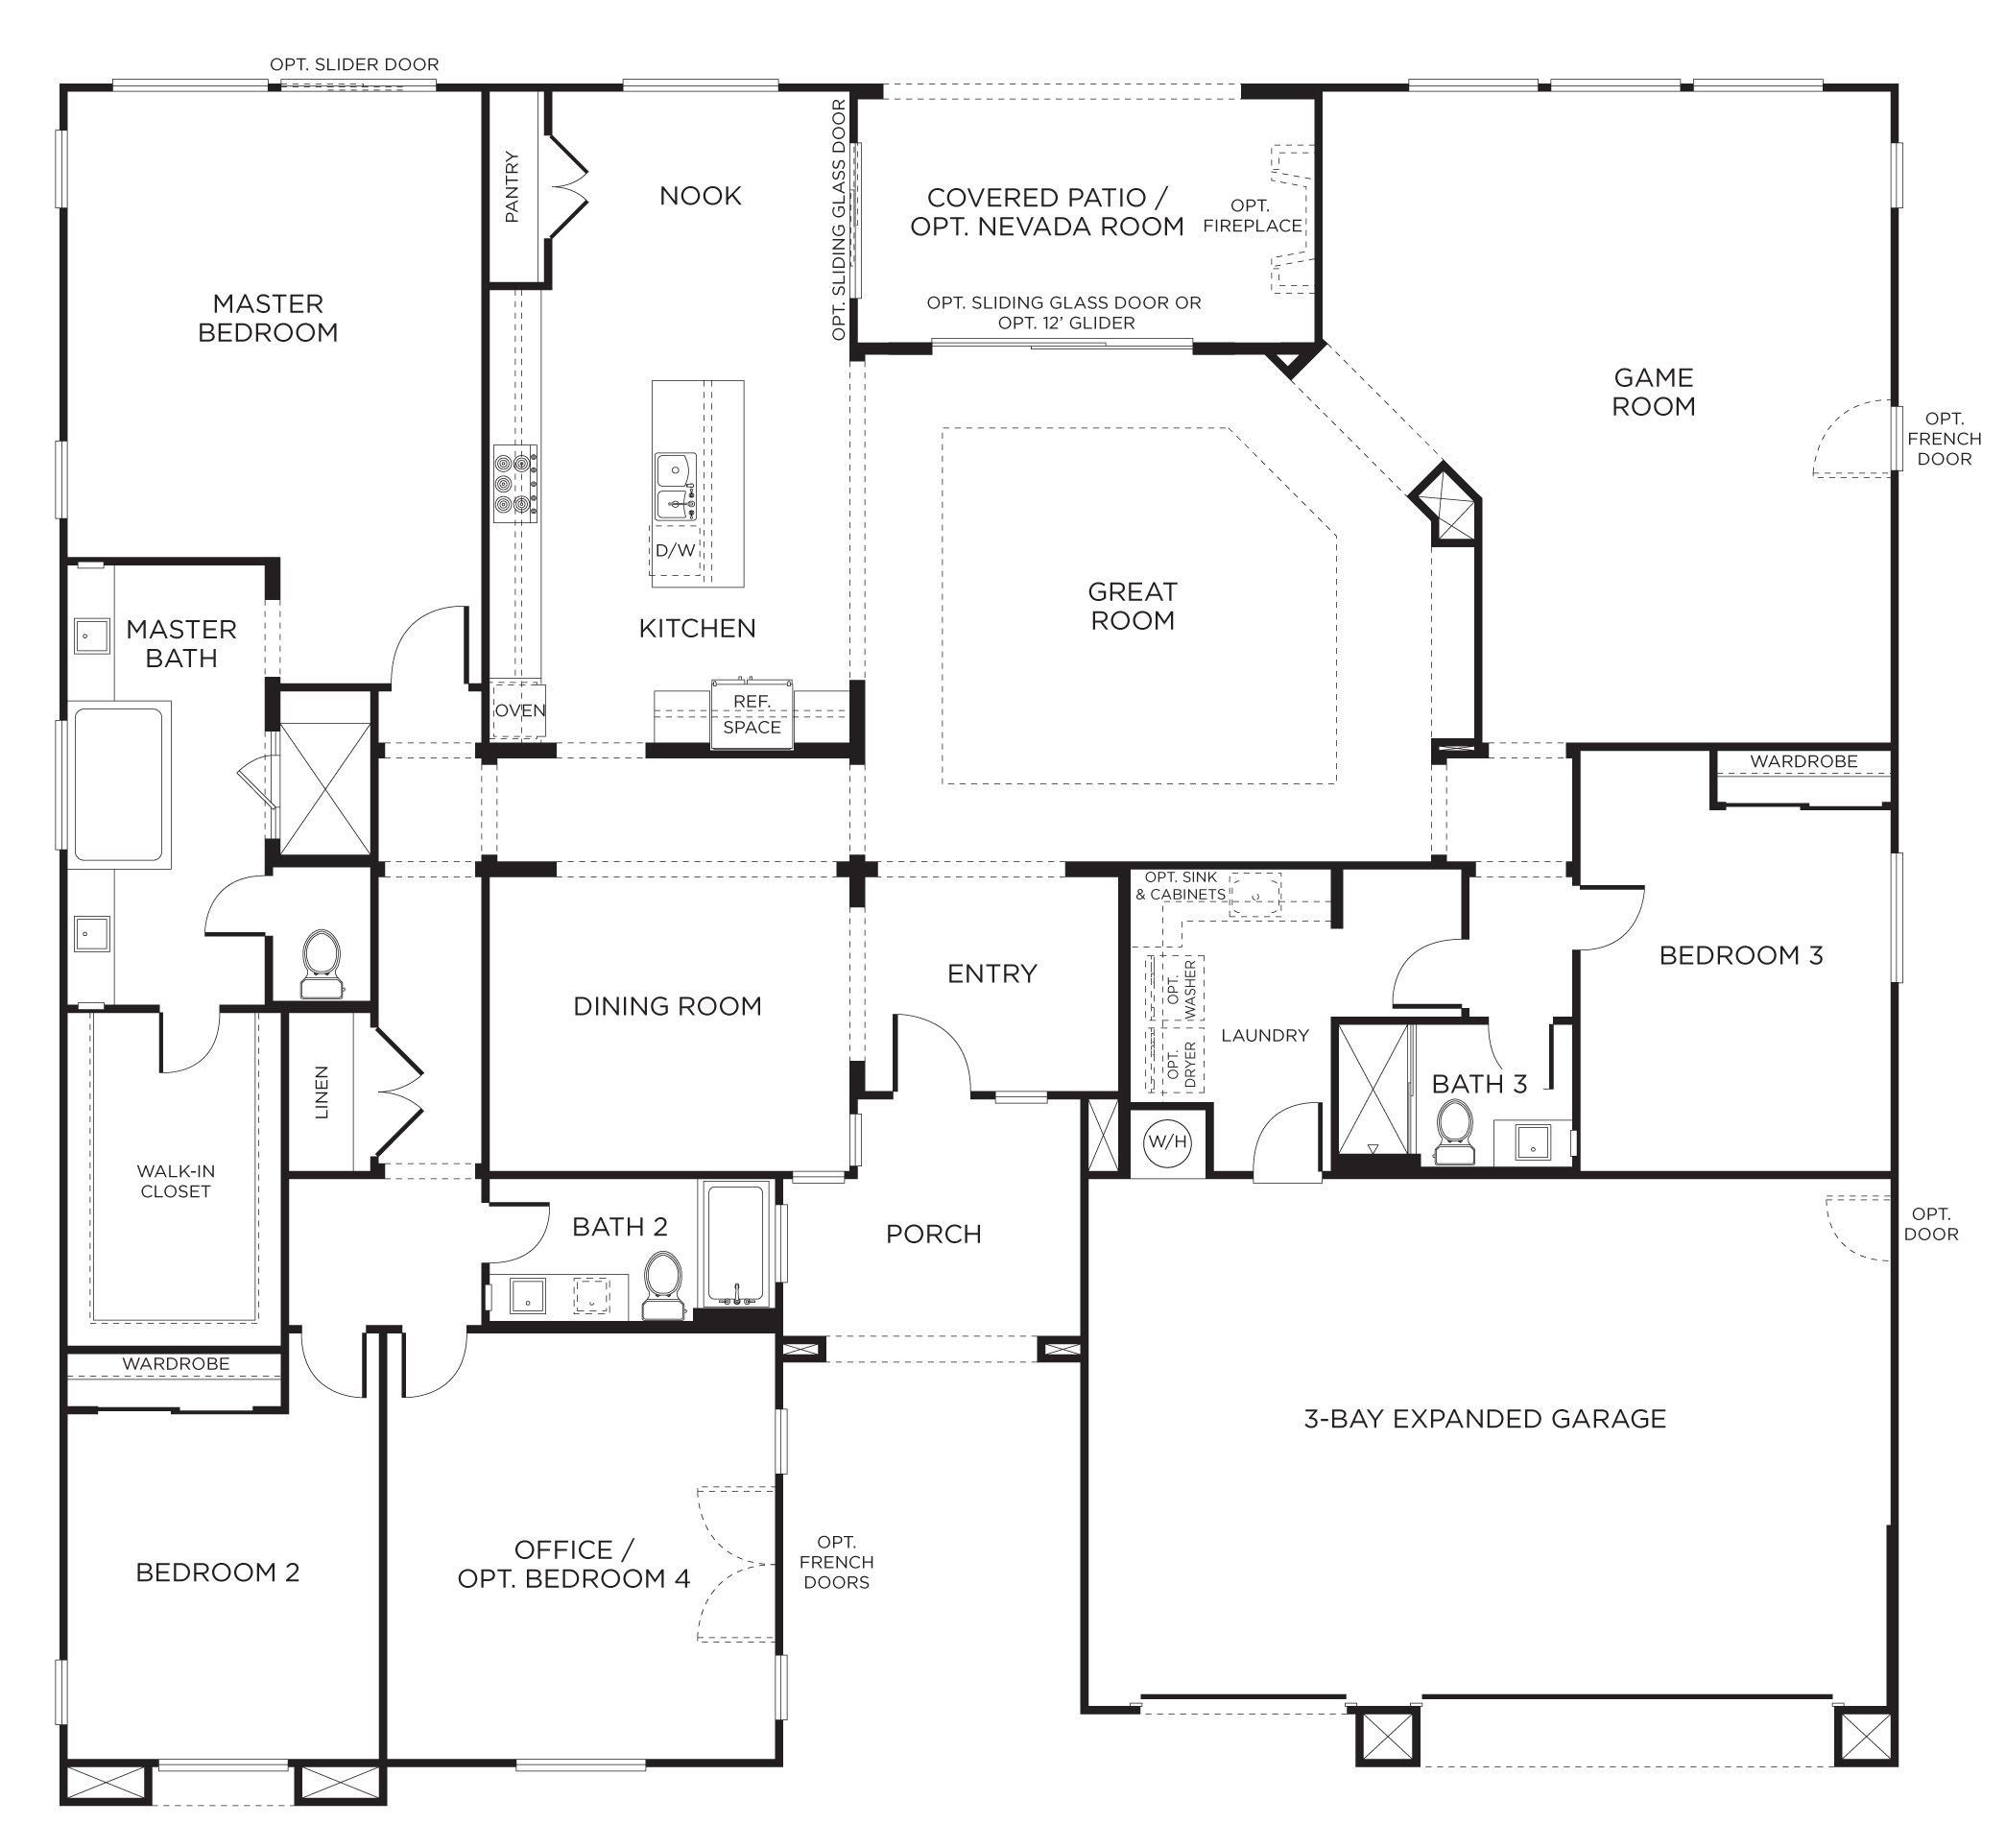 Floorplan 2 3 4 bedrooms 3 bathrooms 3400 square feet for House plans 5 bedrooms 1 story